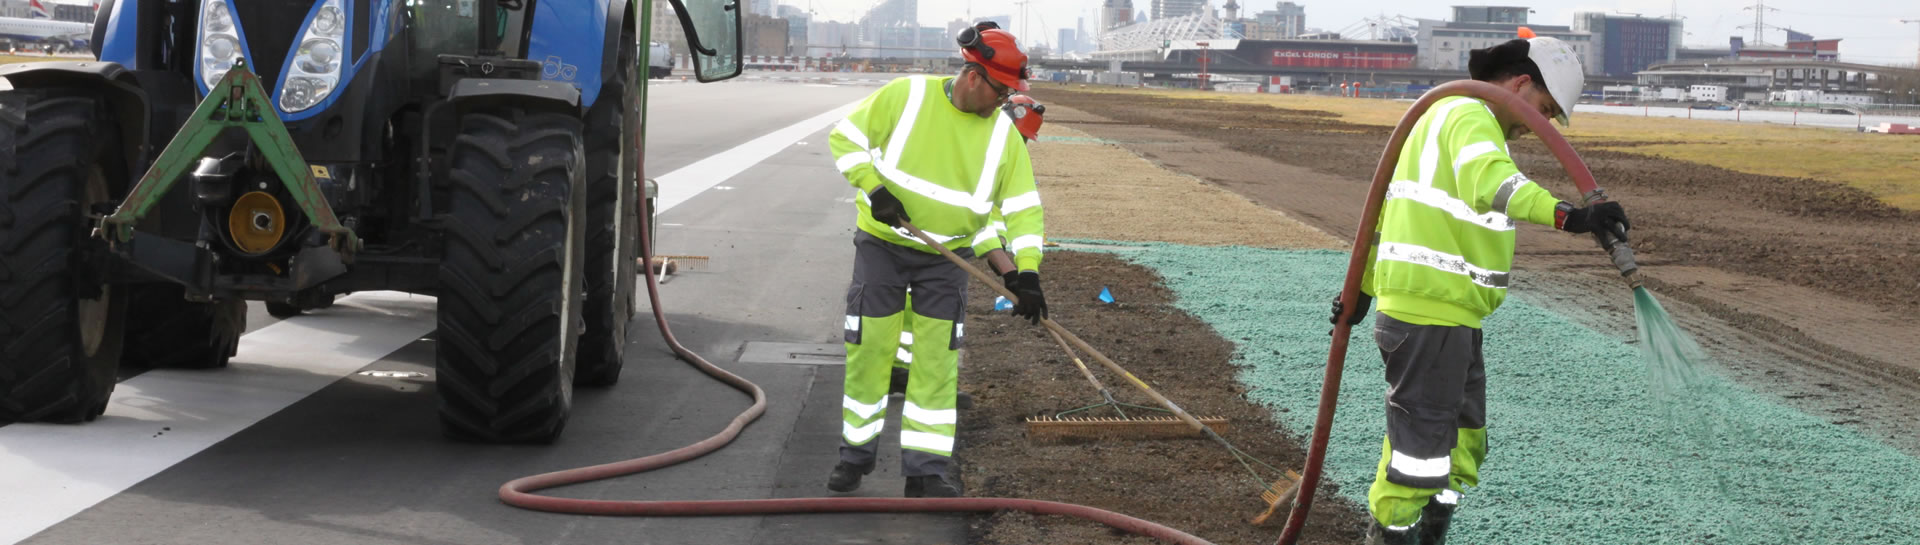 Hydroseeding at City Airport